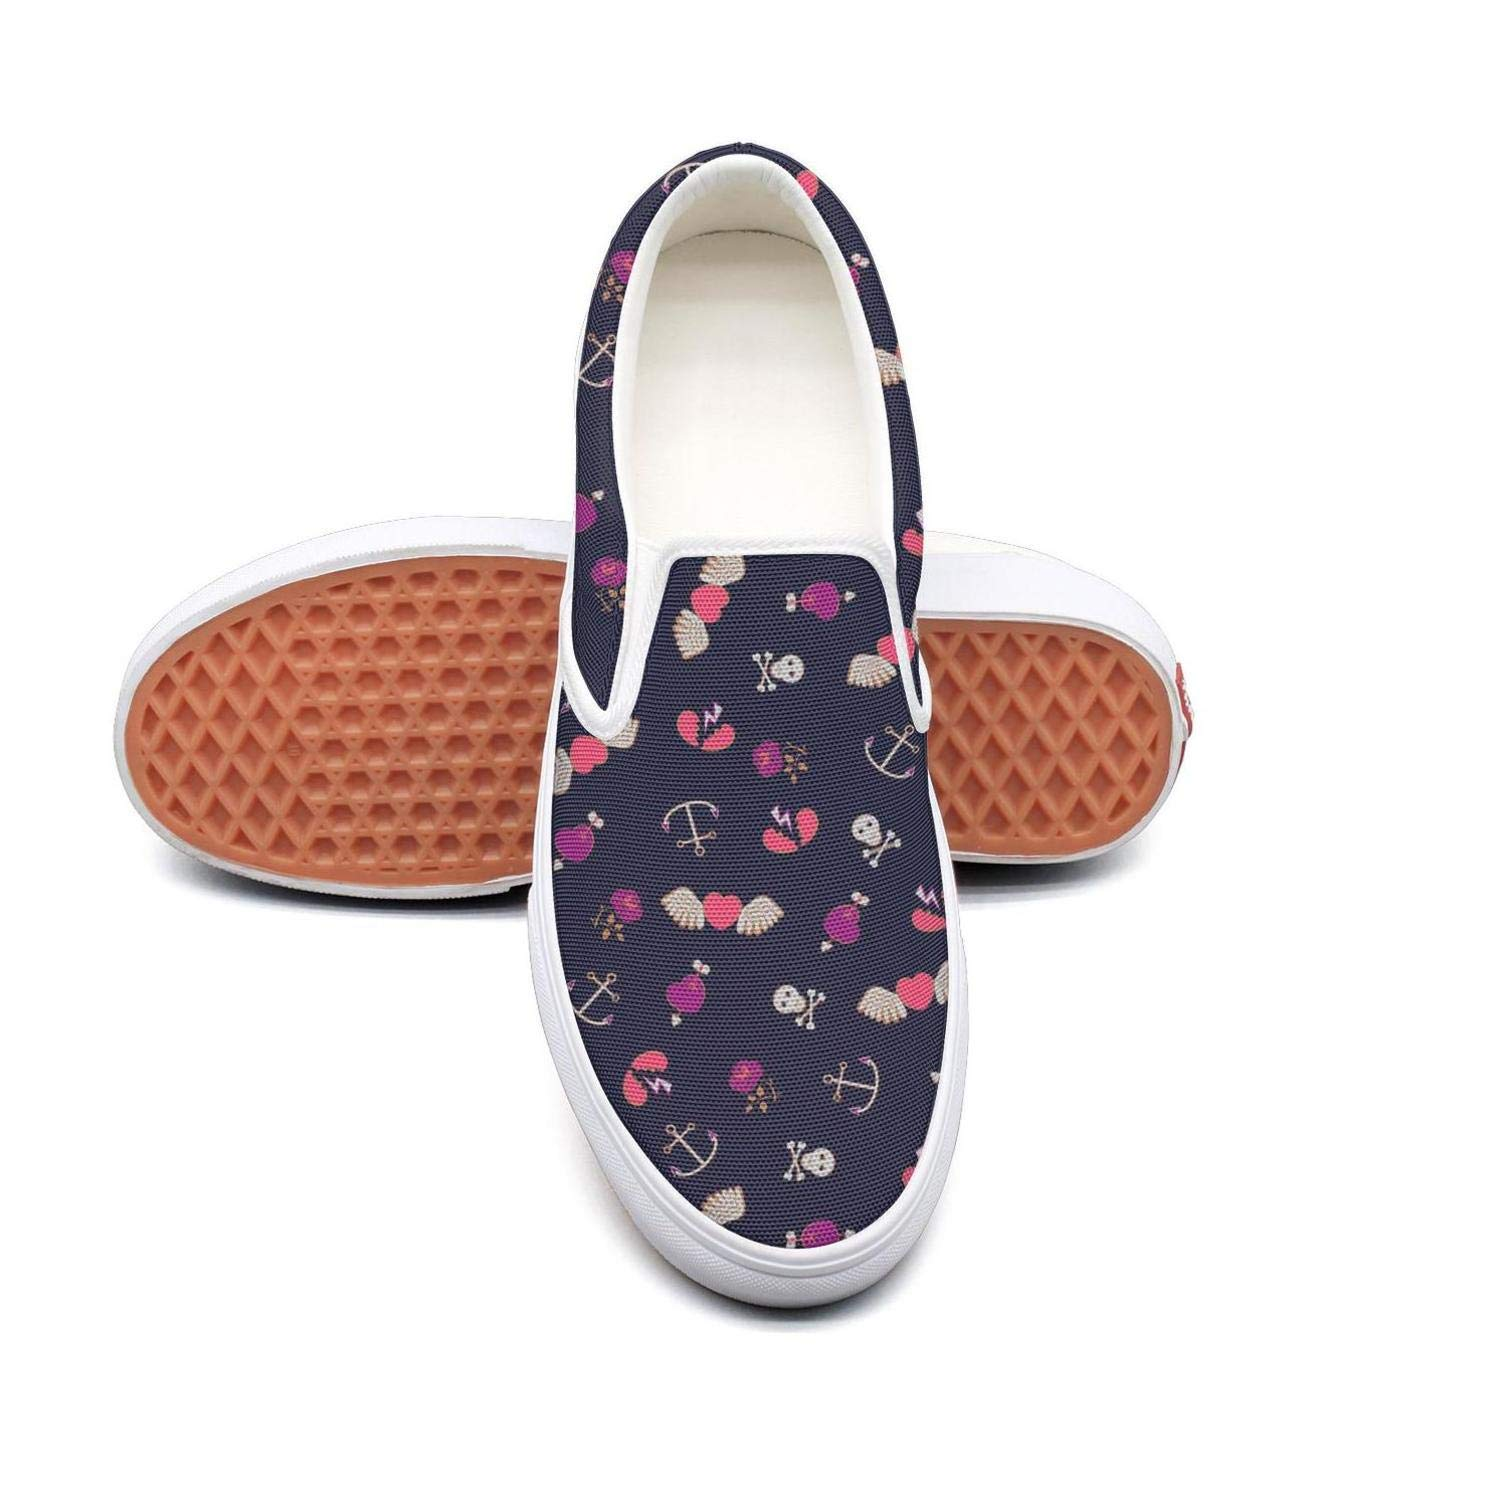 Heart Wings Skull Anchor Slip On Rubber Sole Loafers Canvas Shoes for Women Round Toe